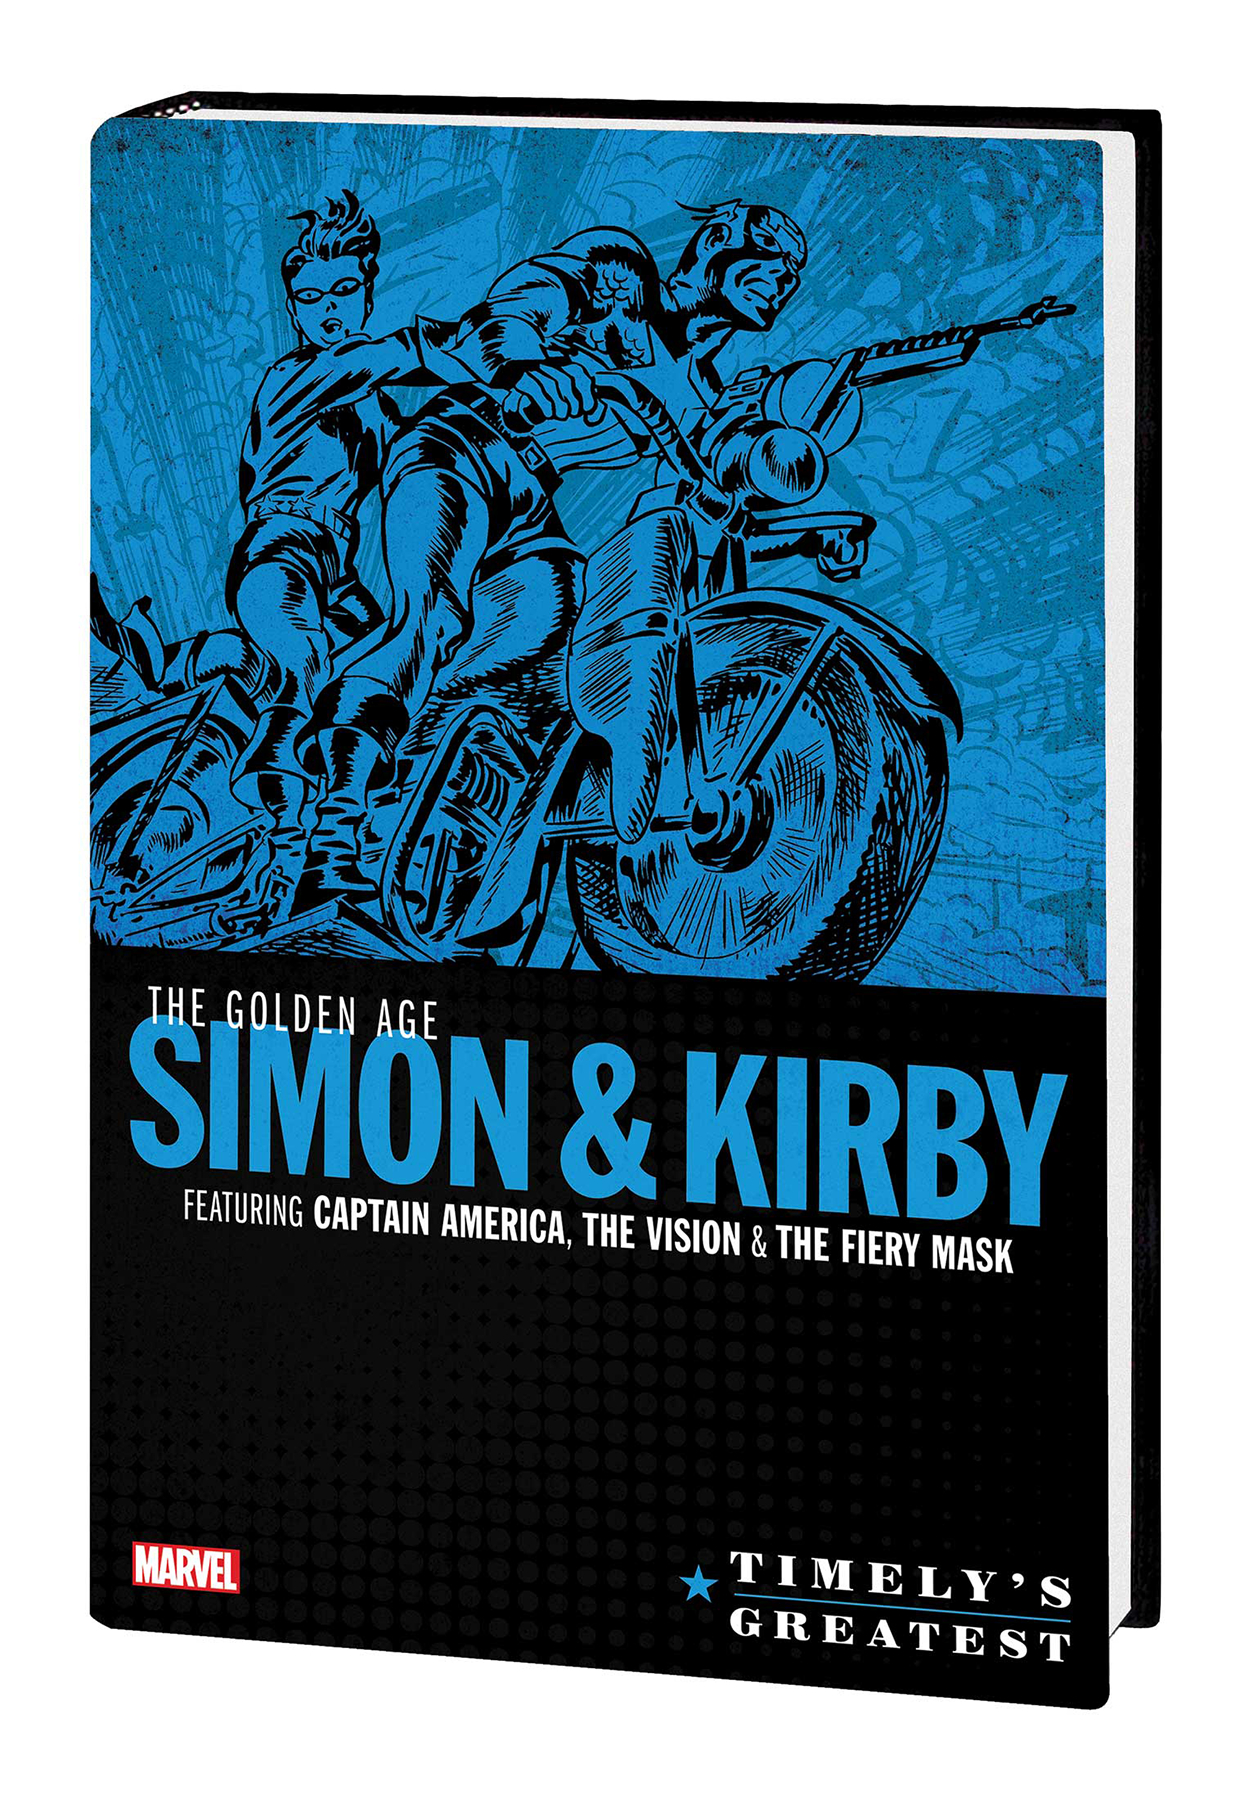 TIMELYS GREATEST HC GOLDEN AGE SIMON & KIRBY OMNIBUS